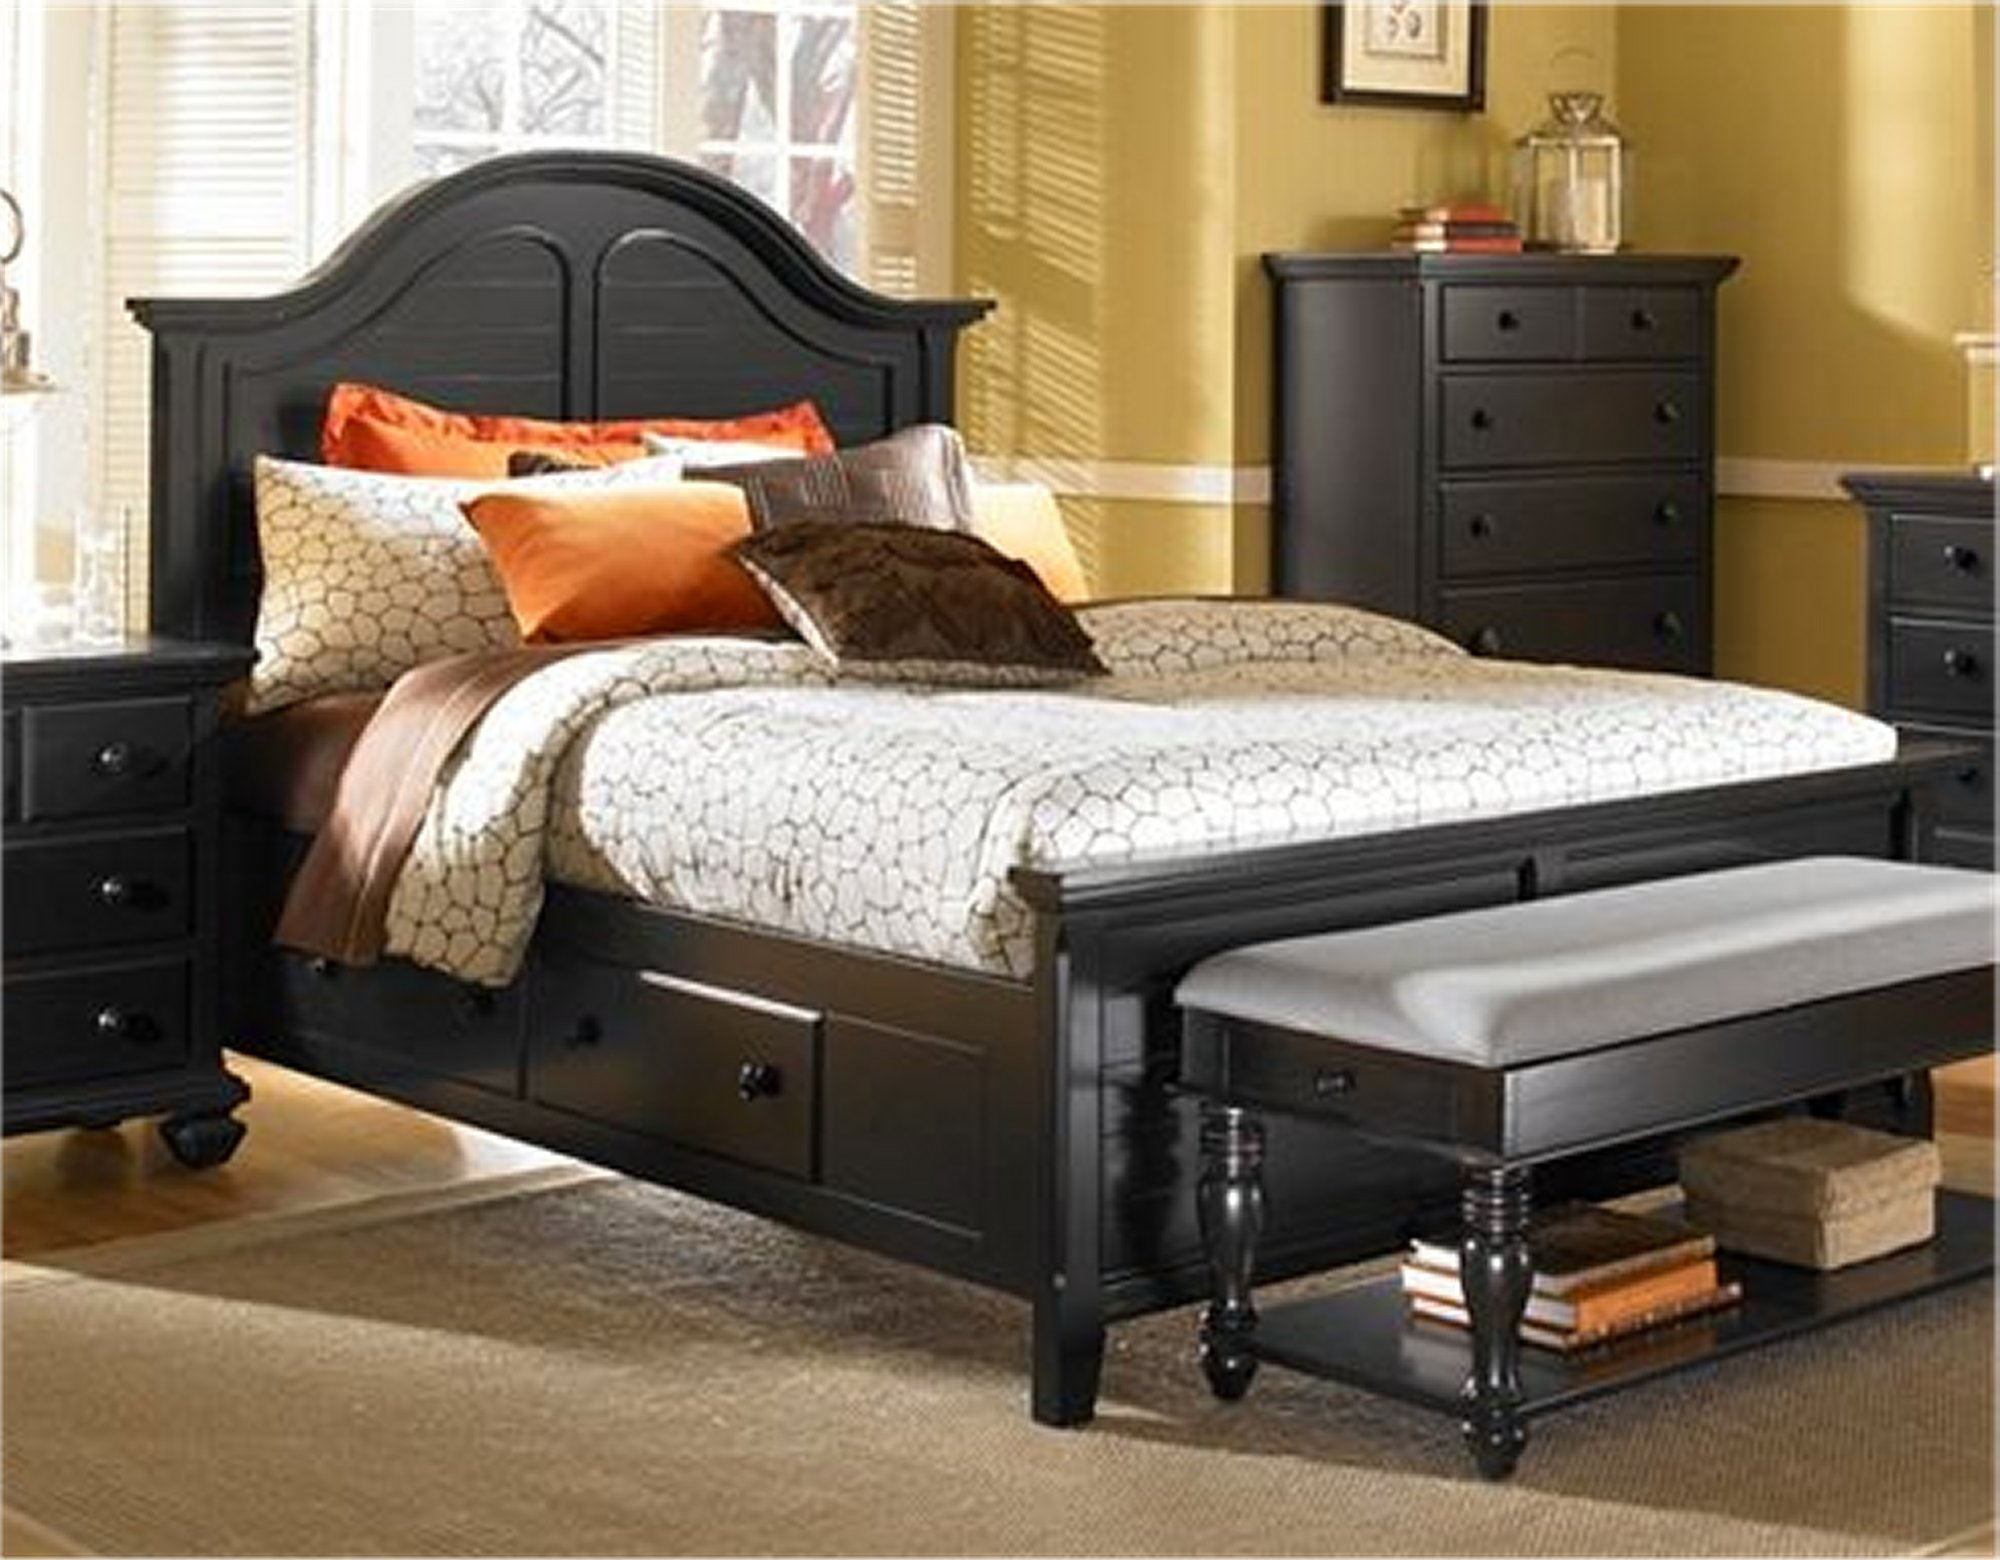 Lovely Vintage Look Bedroom Furniture Of Broyhill Drawers Broyhill Black Acnn Decor